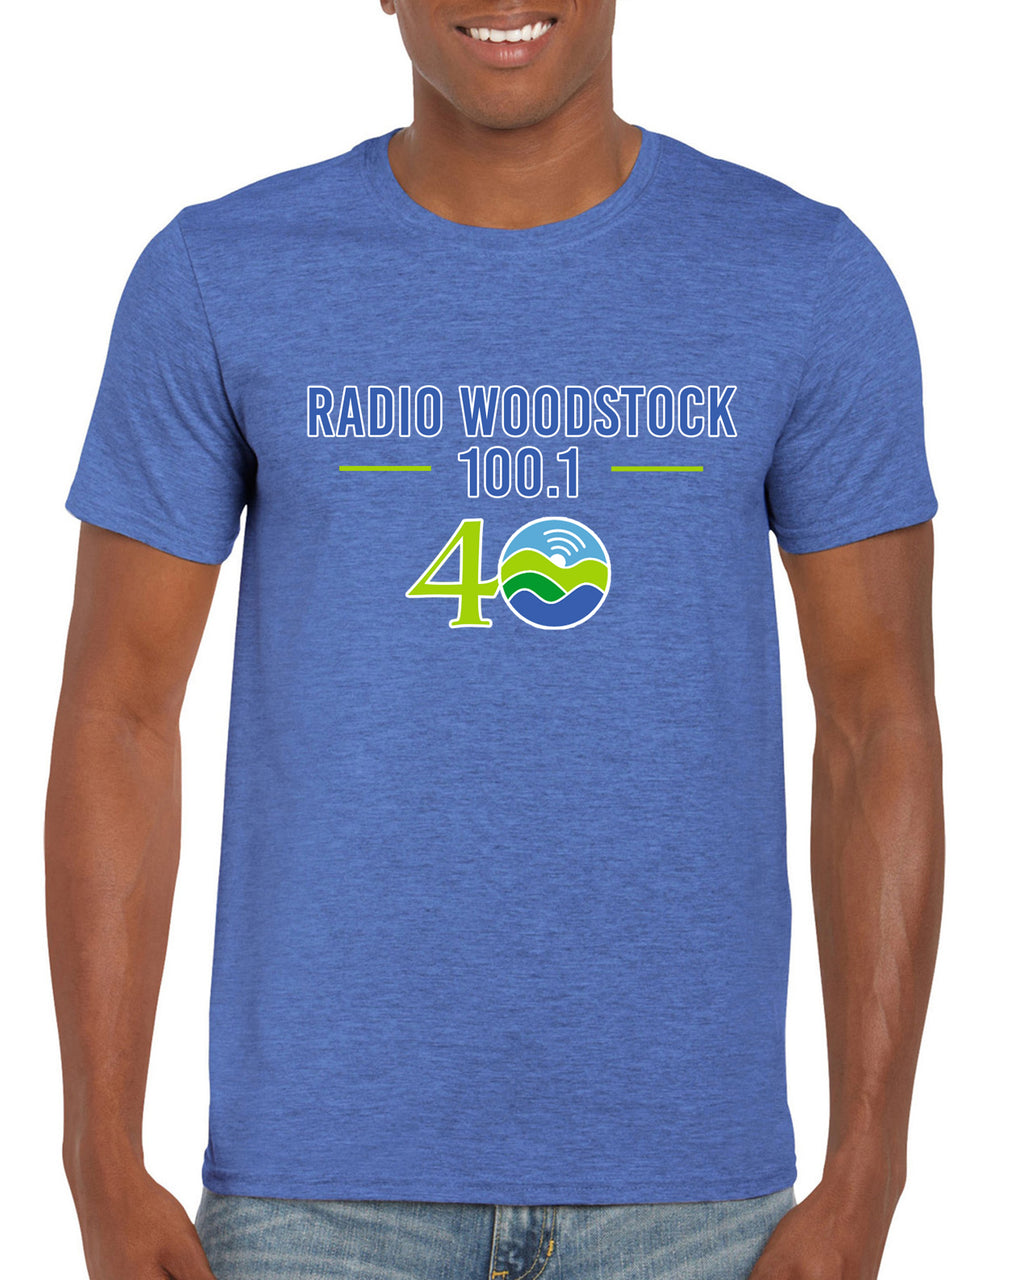 Radio Woodstock 40th Anniversary Tee - Heather Blue *** Limited Edition***